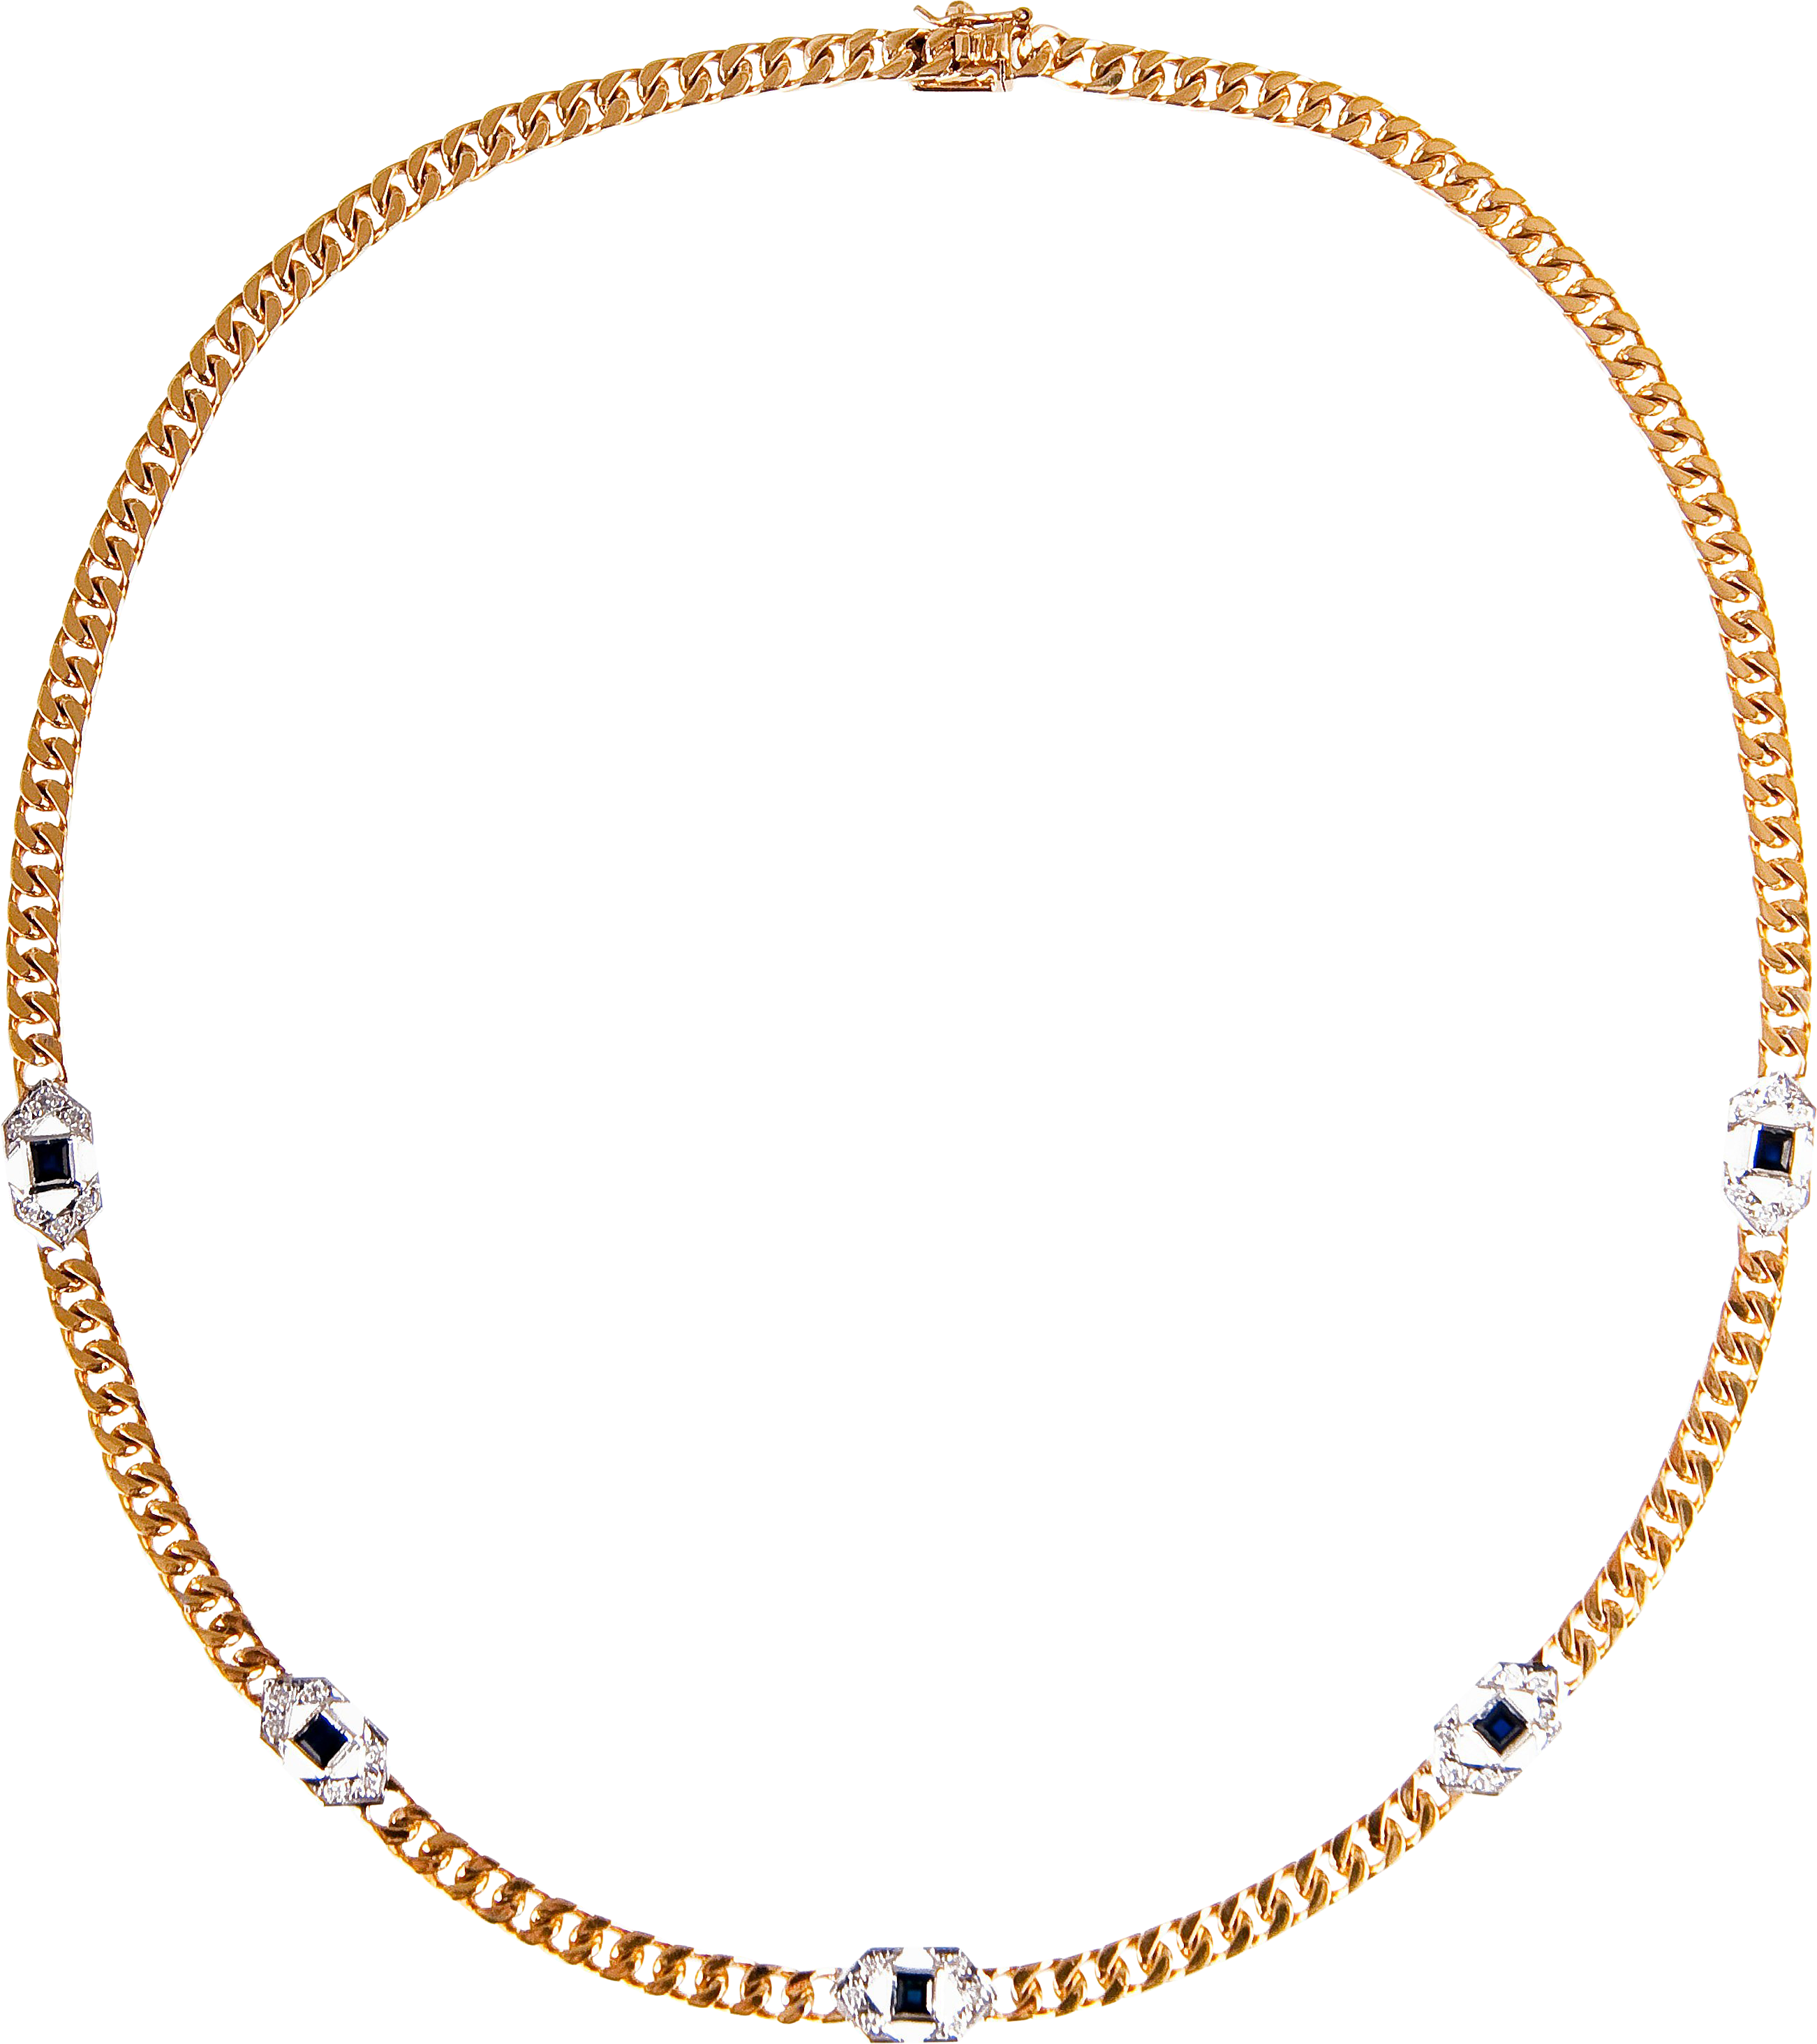 uploads necklace necklace PNG109 4